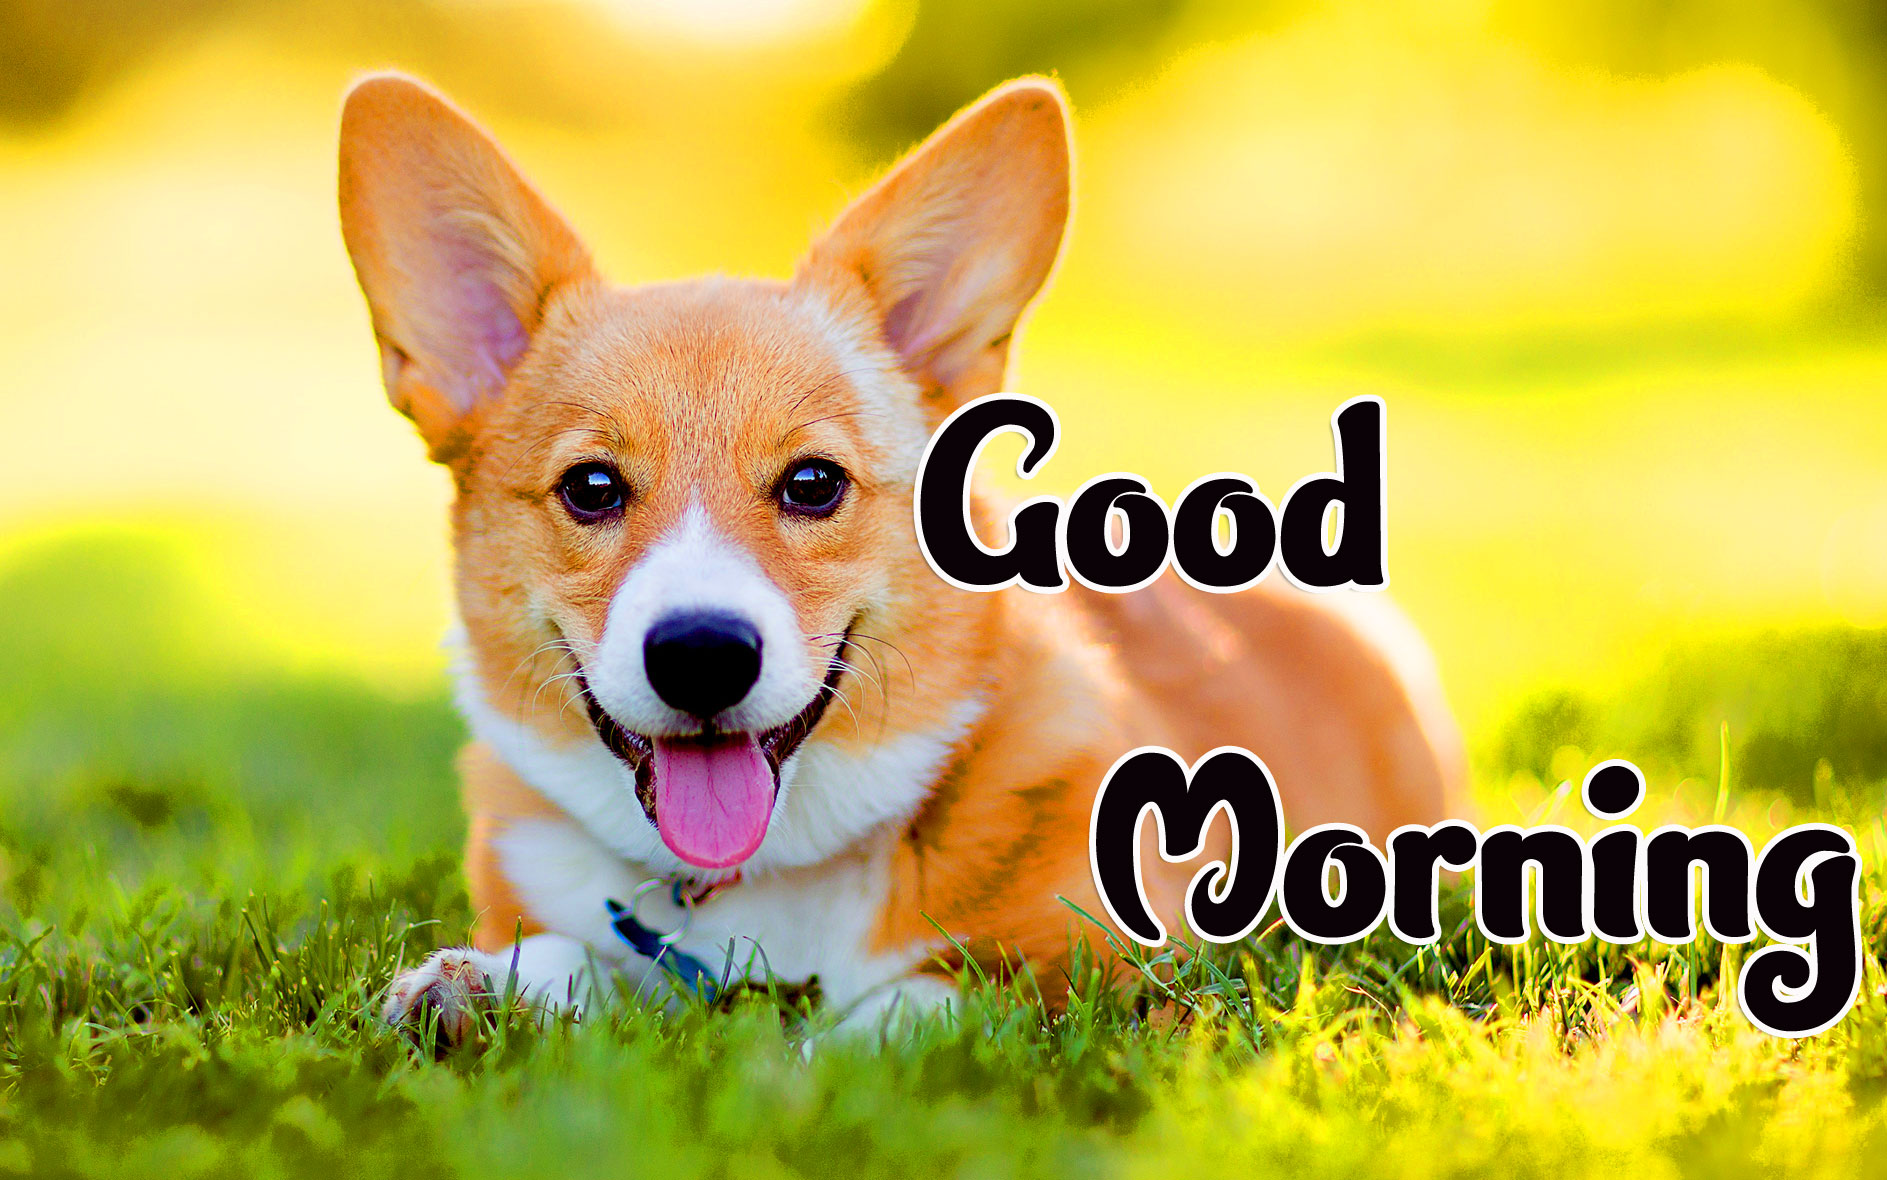 Animal Good morning Wishes Wallpaper for Whatsapp